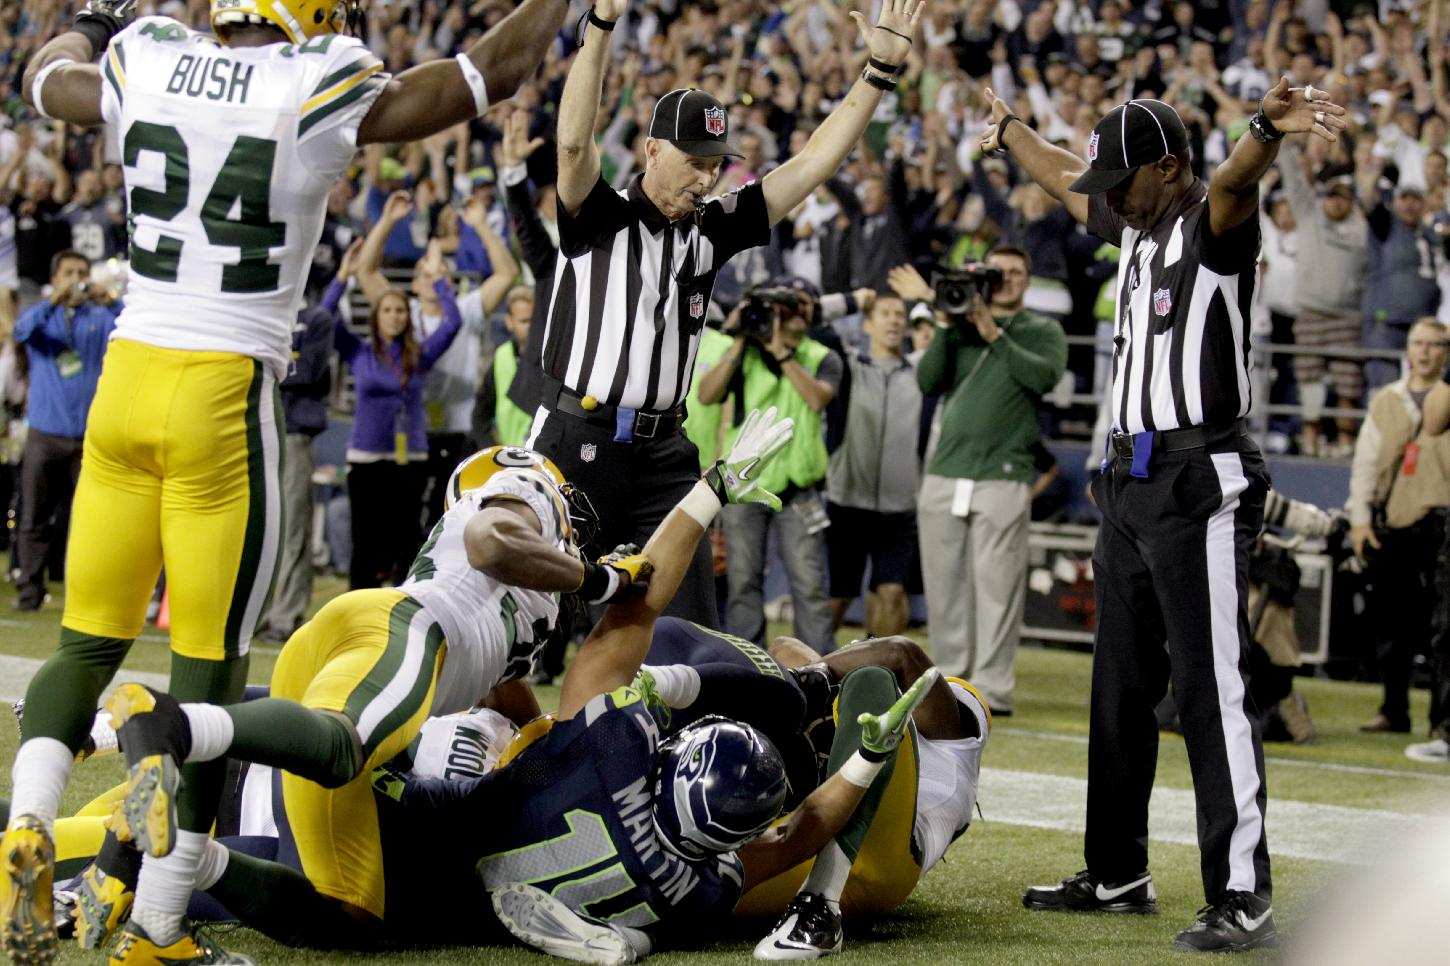 Replacement officials rule Golden Tate scores the winning touchdown against Green Bay. (AP)